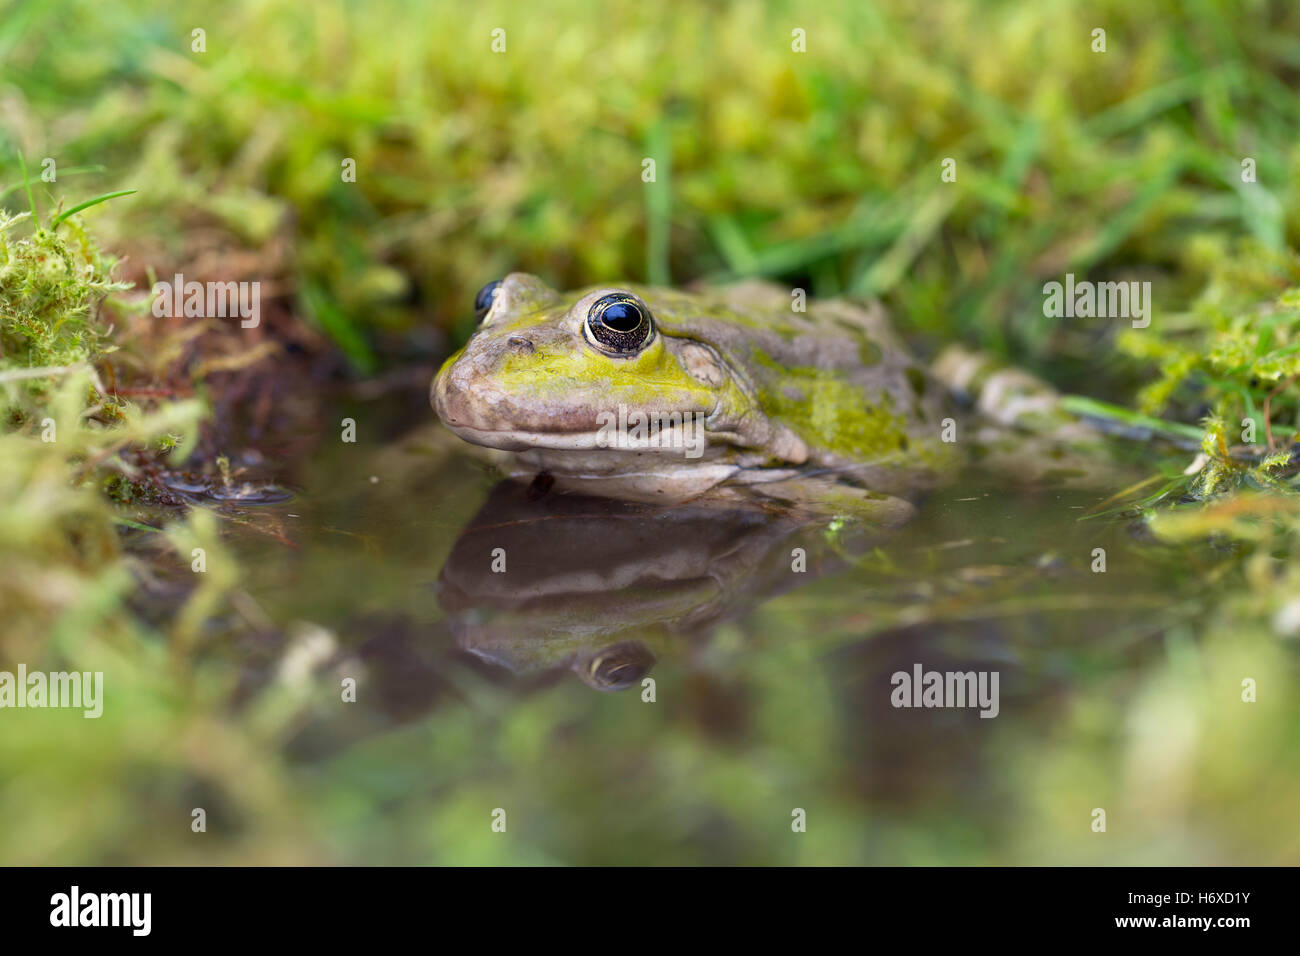 Marsh Frog; Pelophylax ridibundus Single in Water UK - Stock Image